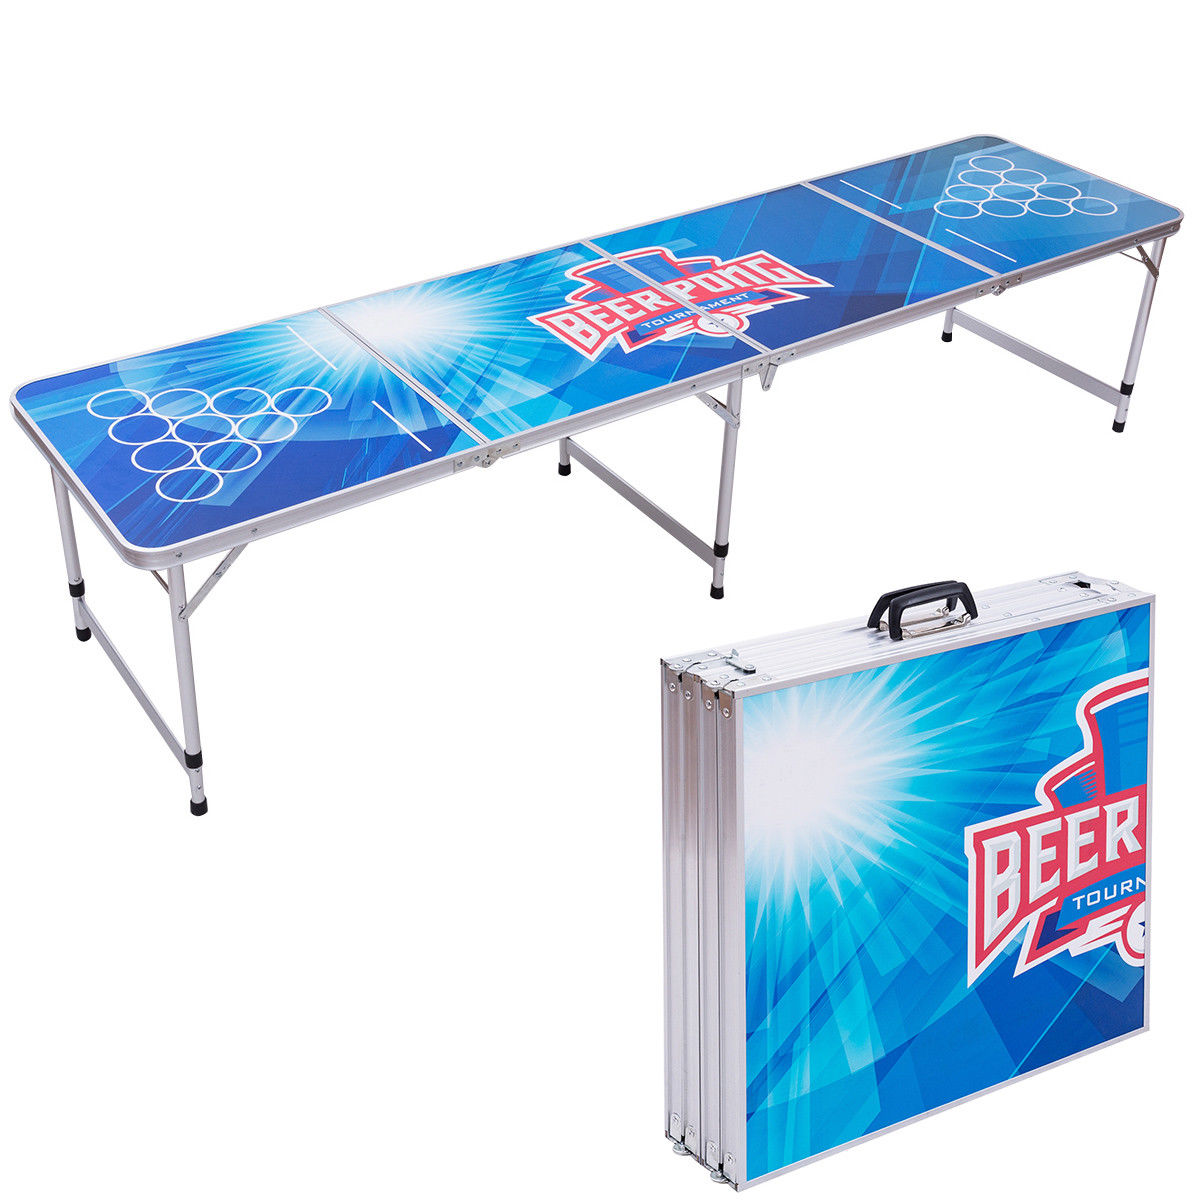 Giantex 8FT Portable Folding Beer Pong Table Party Gaming Picnic Camping Desk Modern Indoor Outdoor Furniture OP3336 fireprofing board office folding table portable indoor outdoor picnic party camping center folding tables with 4 folding chairs